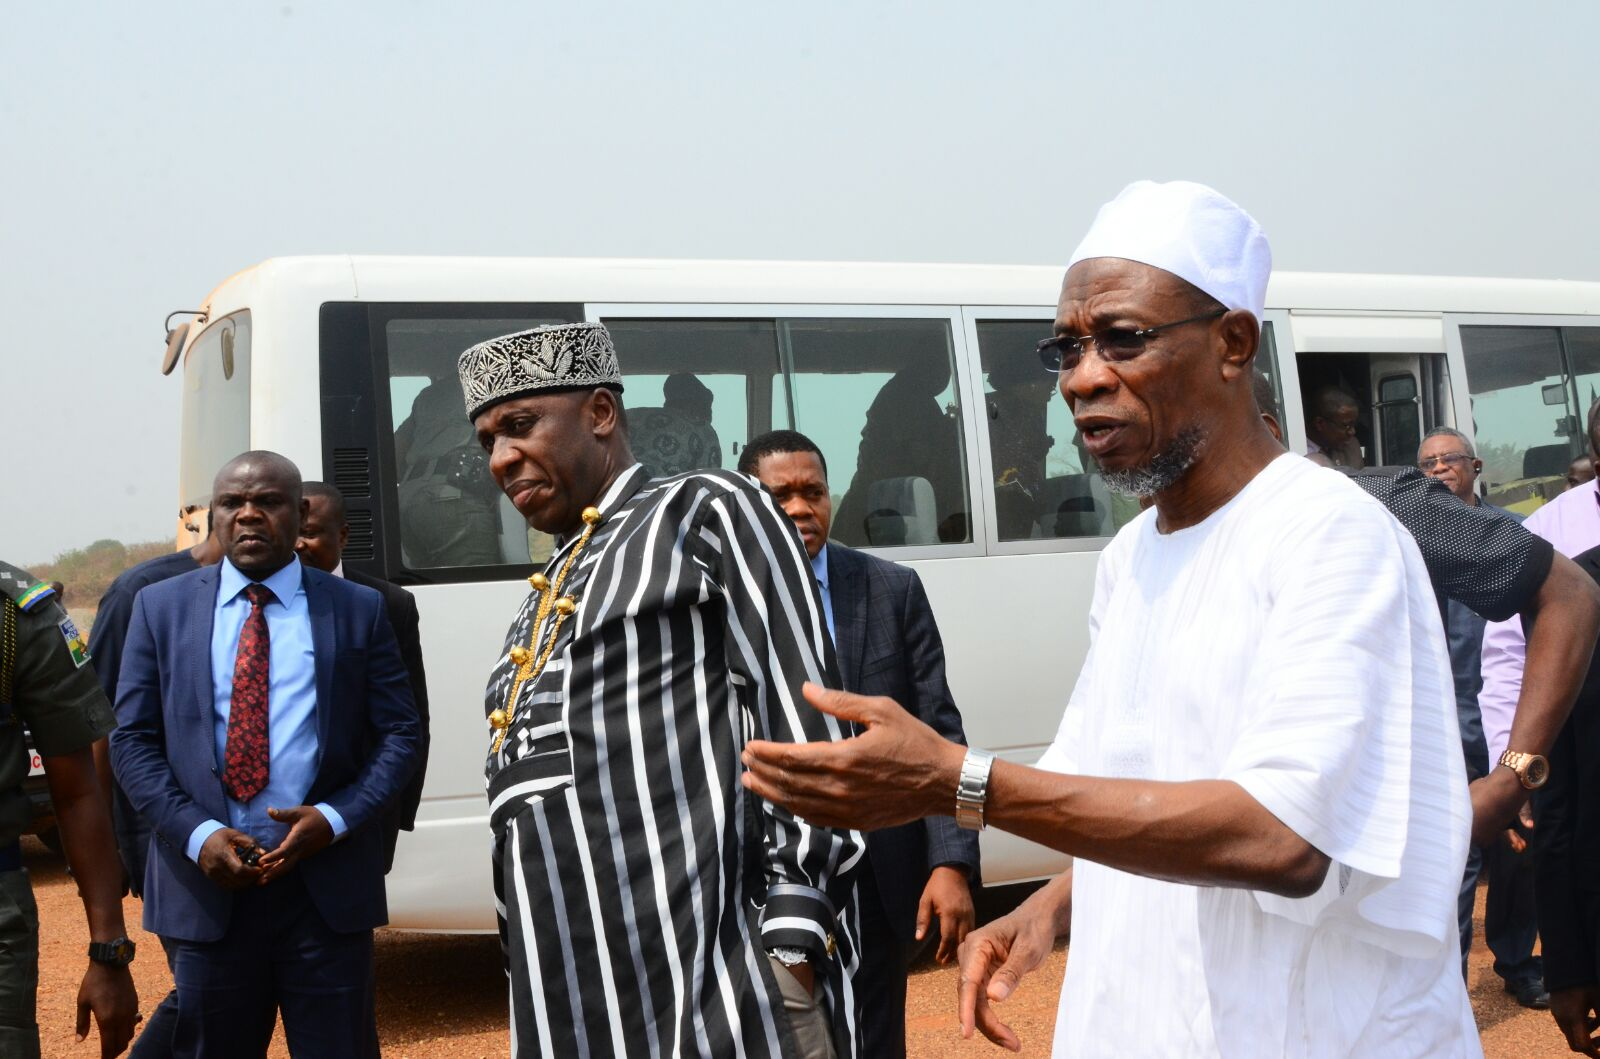 Amaechi Inspects Airport Project In Ido Osun (Photos)